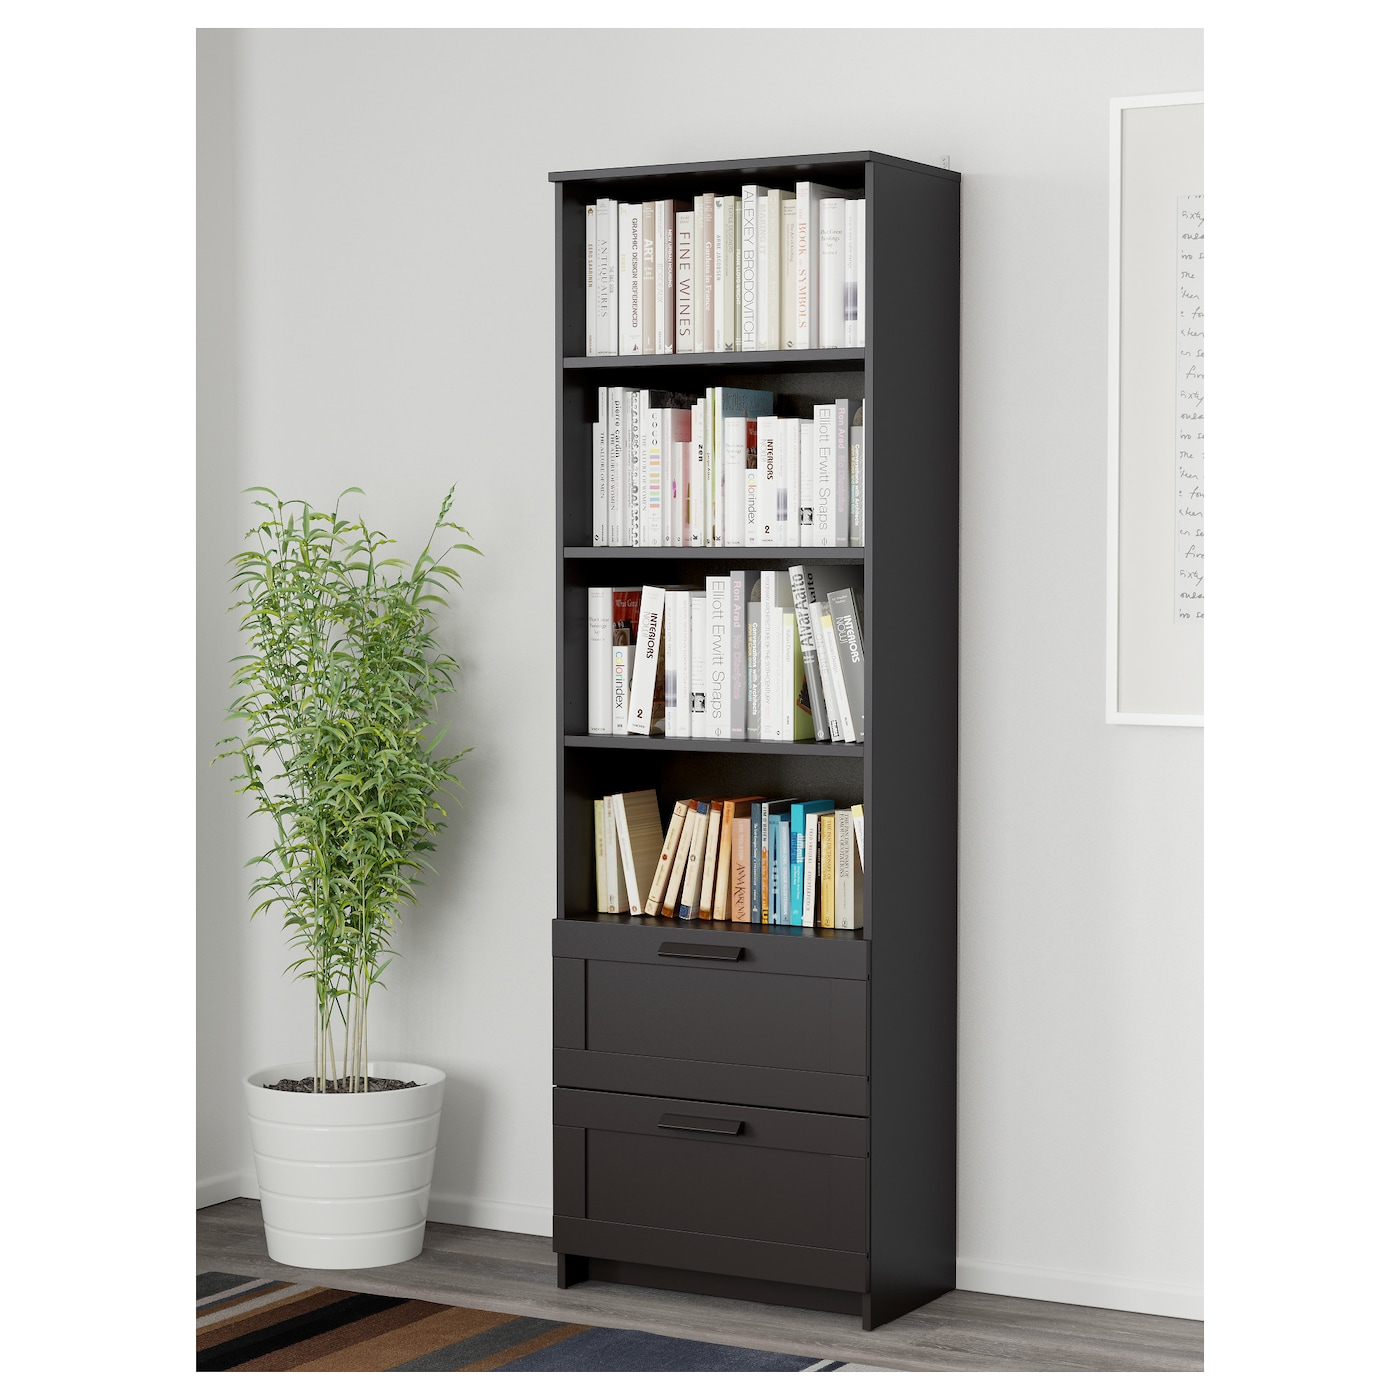 brimnes bookcase black 60x190 cm ikea. Black Bedroom Furniture Sets. Home Design Ideas